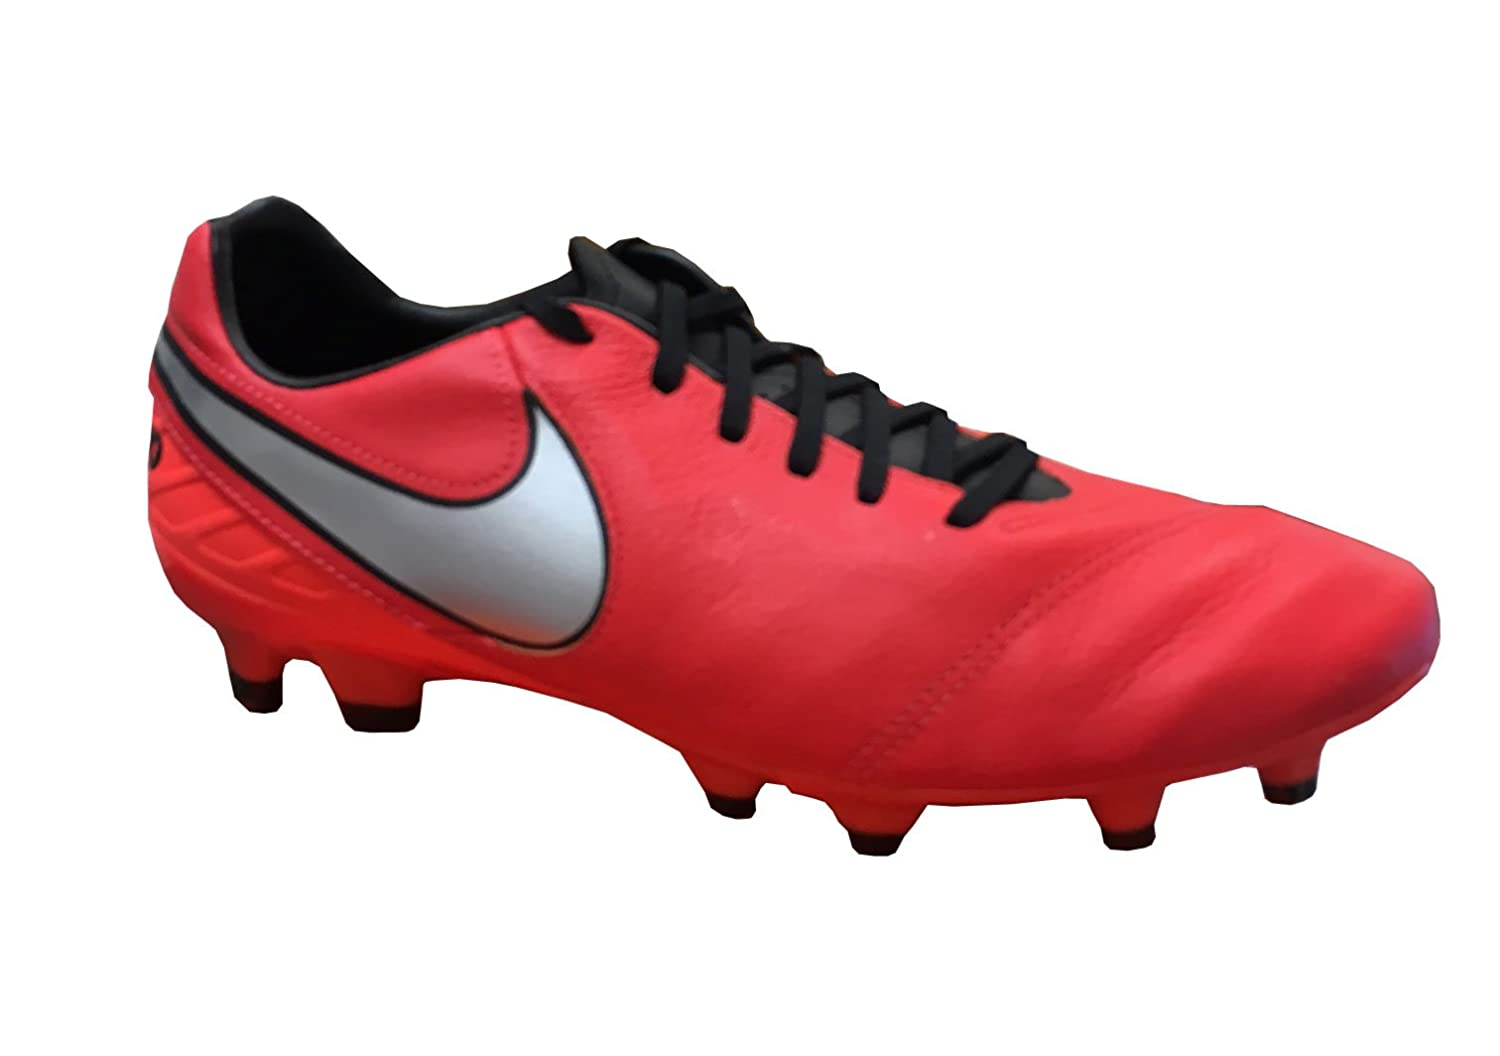 NIKE Men's Tiempo Mystic V FG Soccer Cleat B00YG4CT6O 12 M US|Light Crimson/Total Crimson-metallic Silver